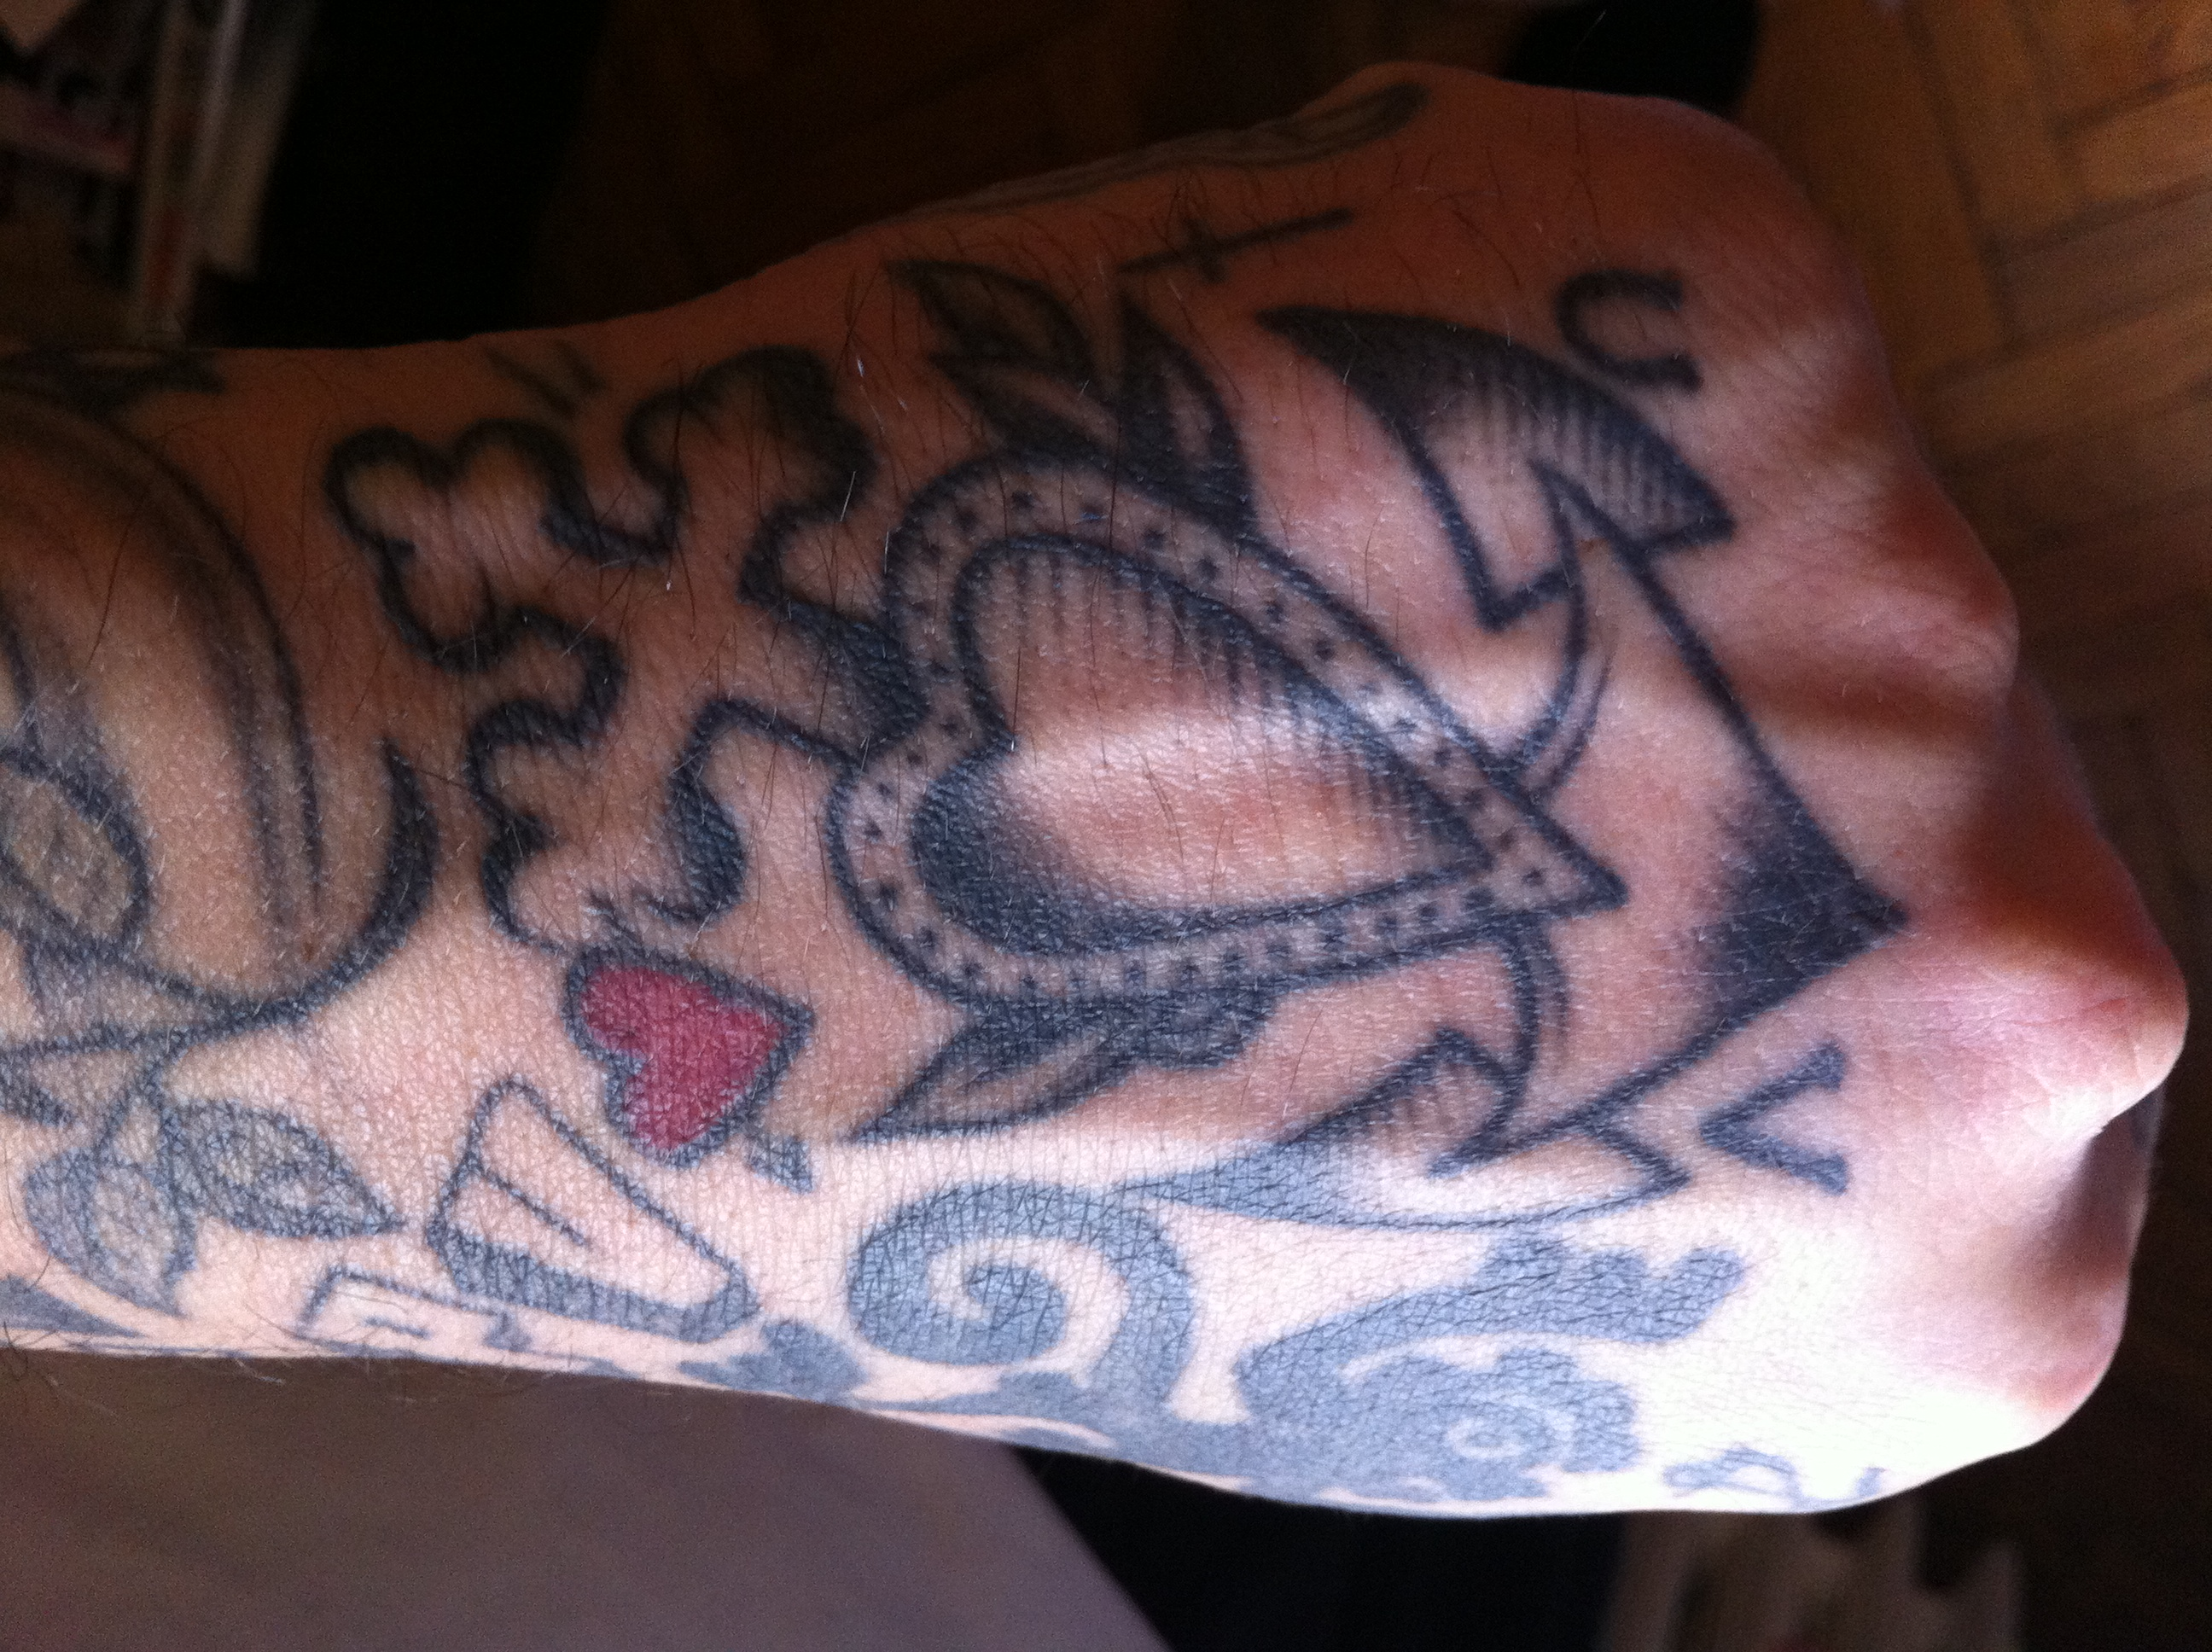 Faith Hope Charity Tattoo Tattoo on my hand by pepe of